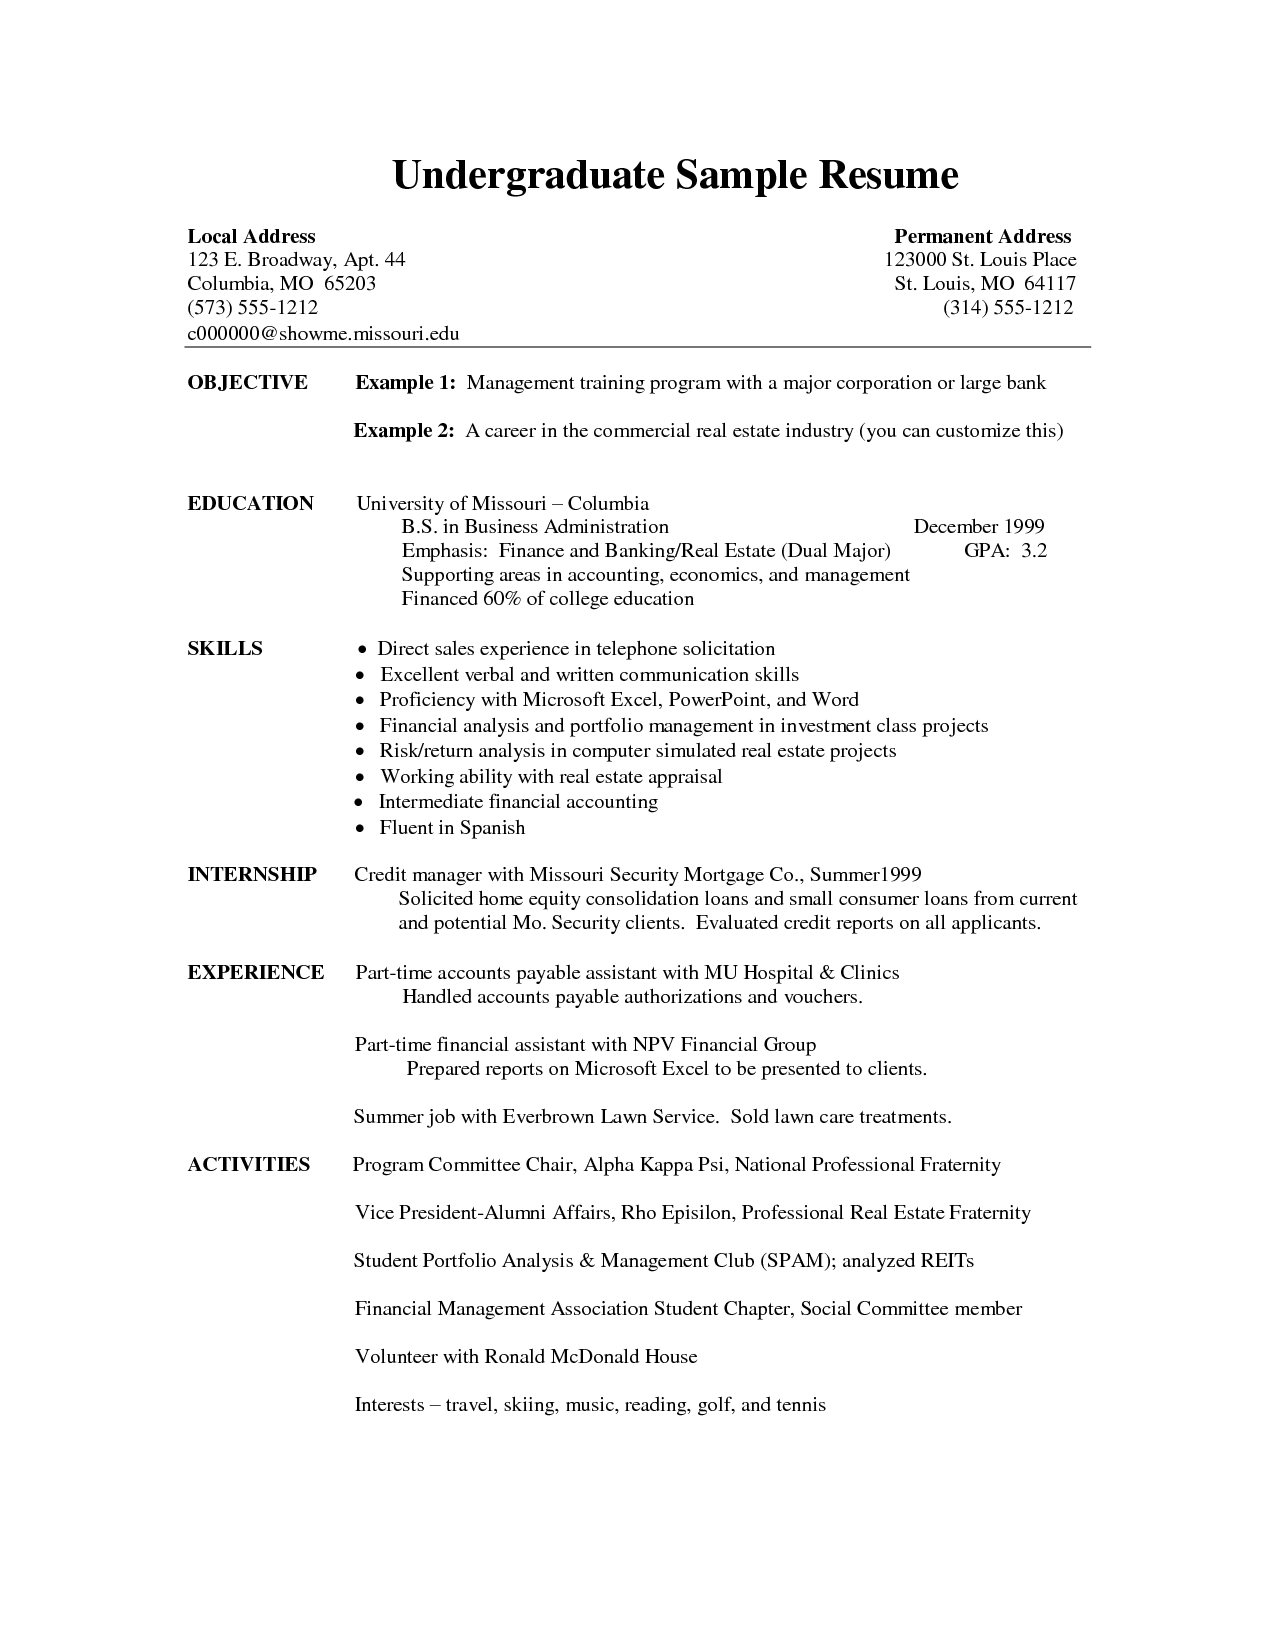 Resume Templates Undergraduate Resume Templates